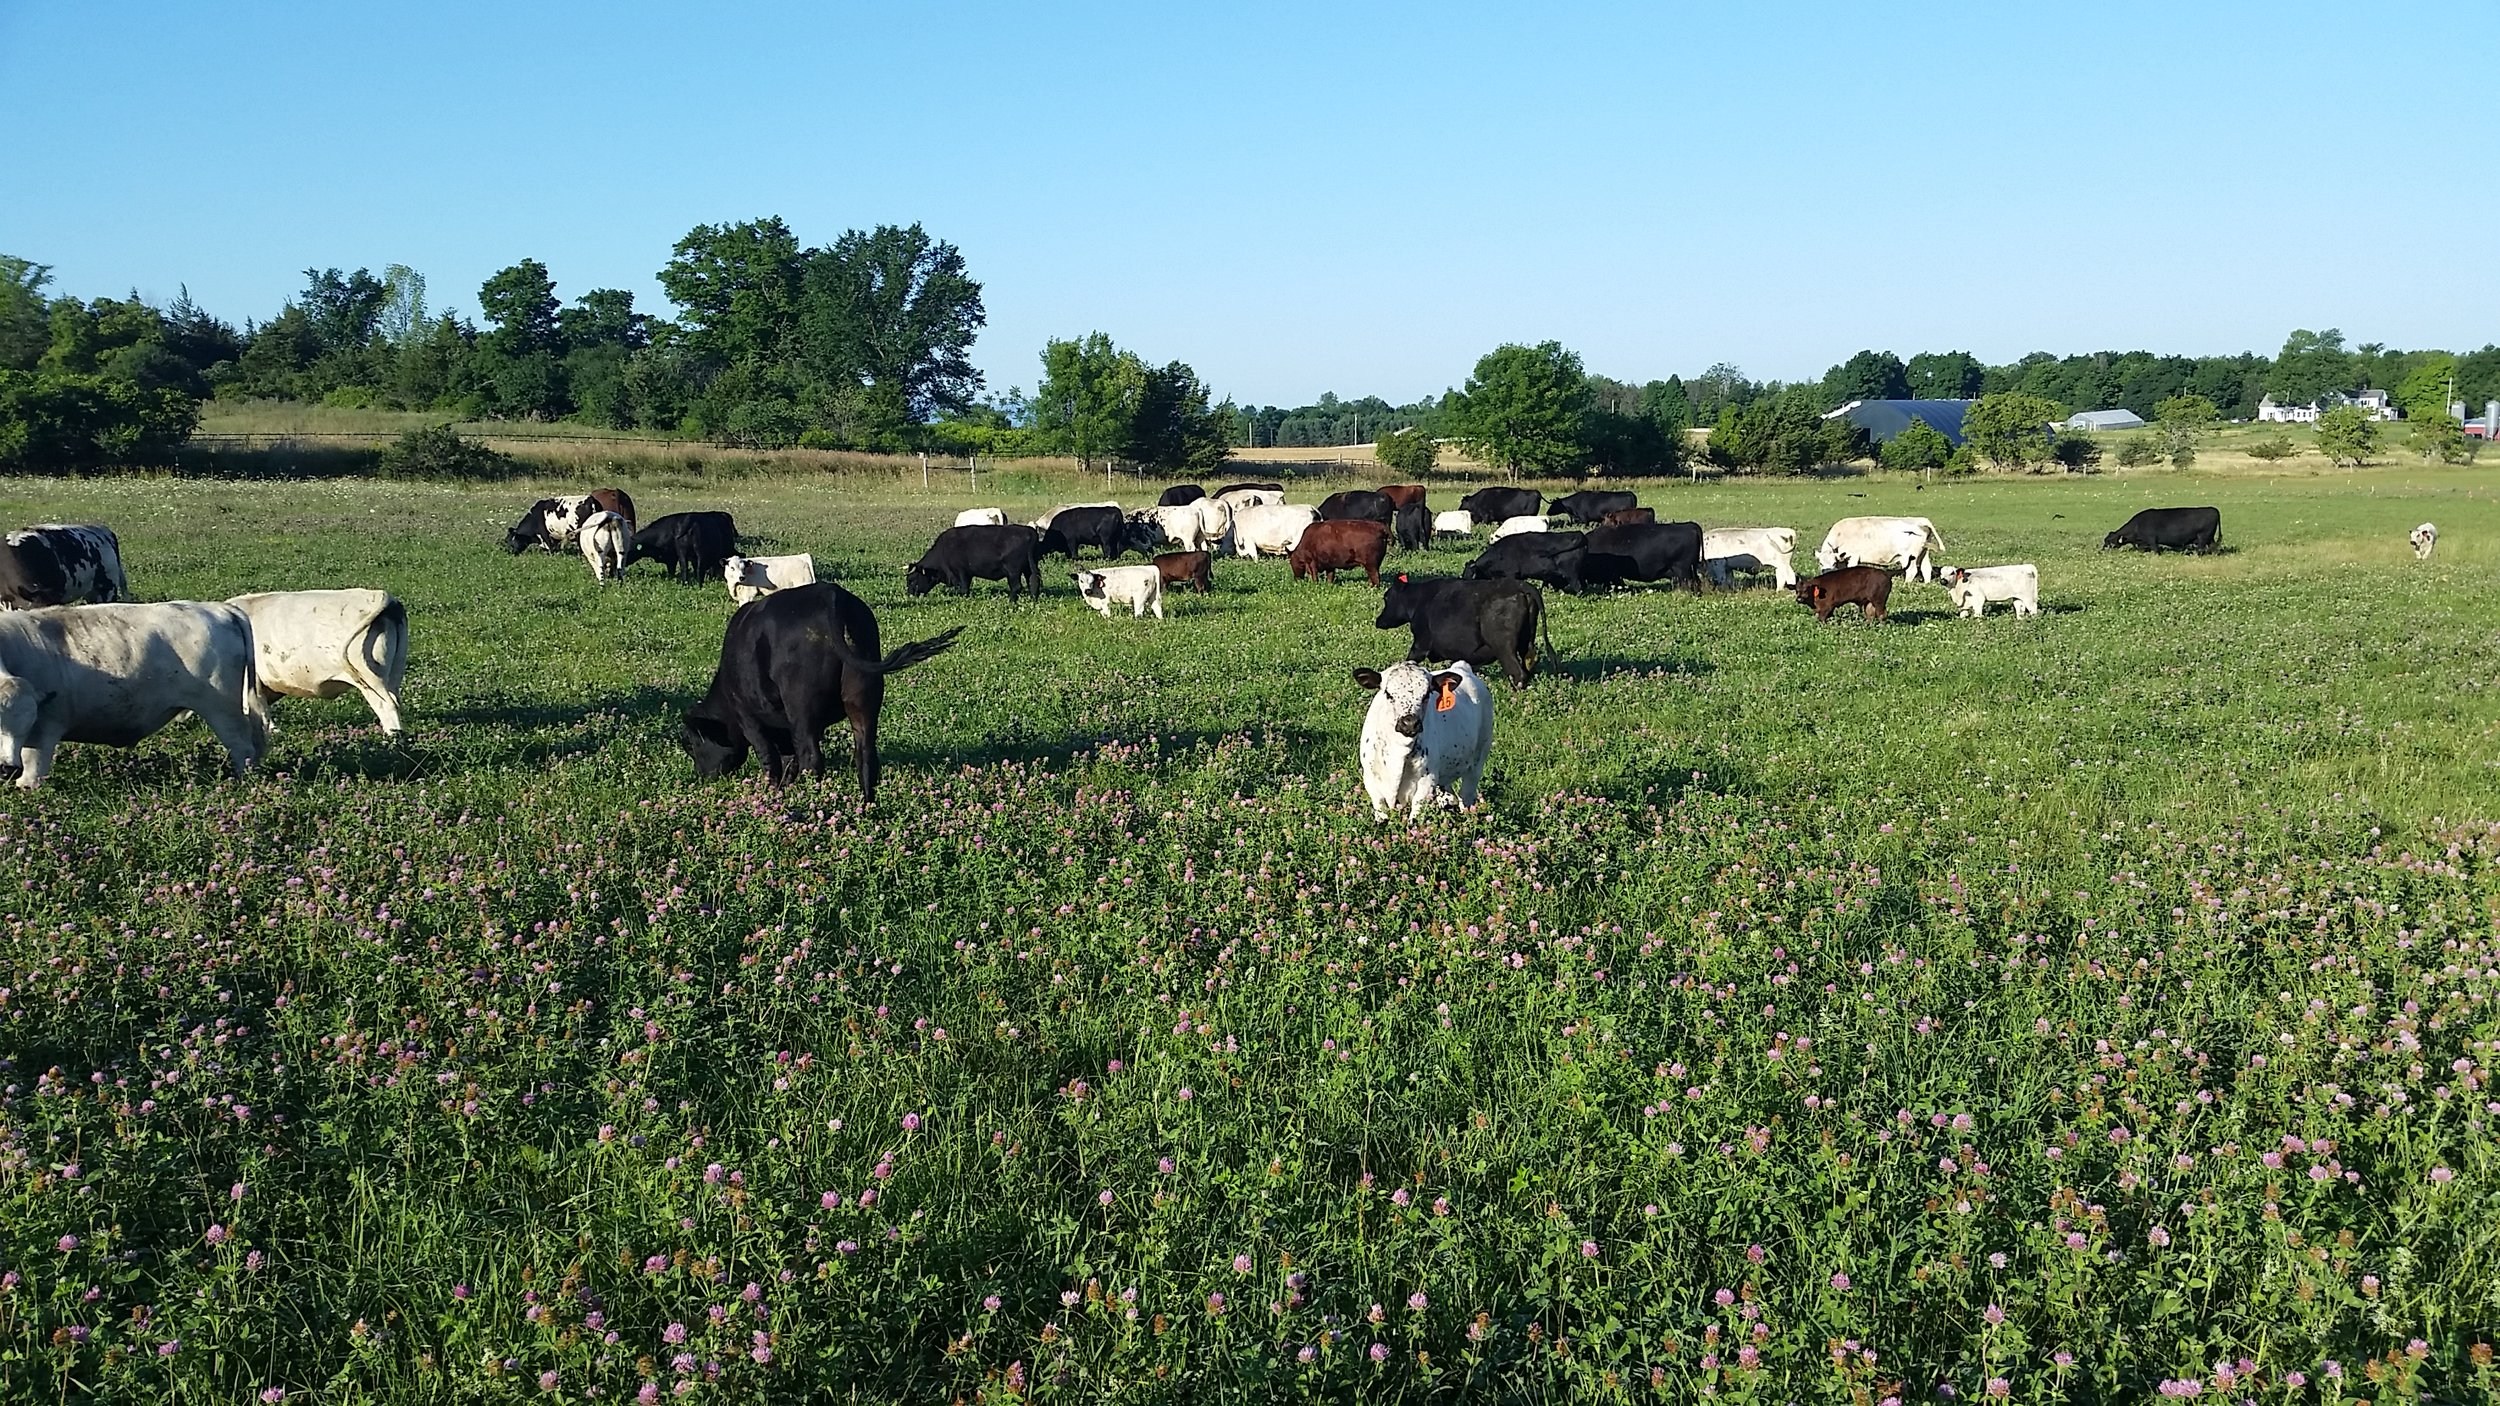 Health Hero Farm Cows Graze on Clover